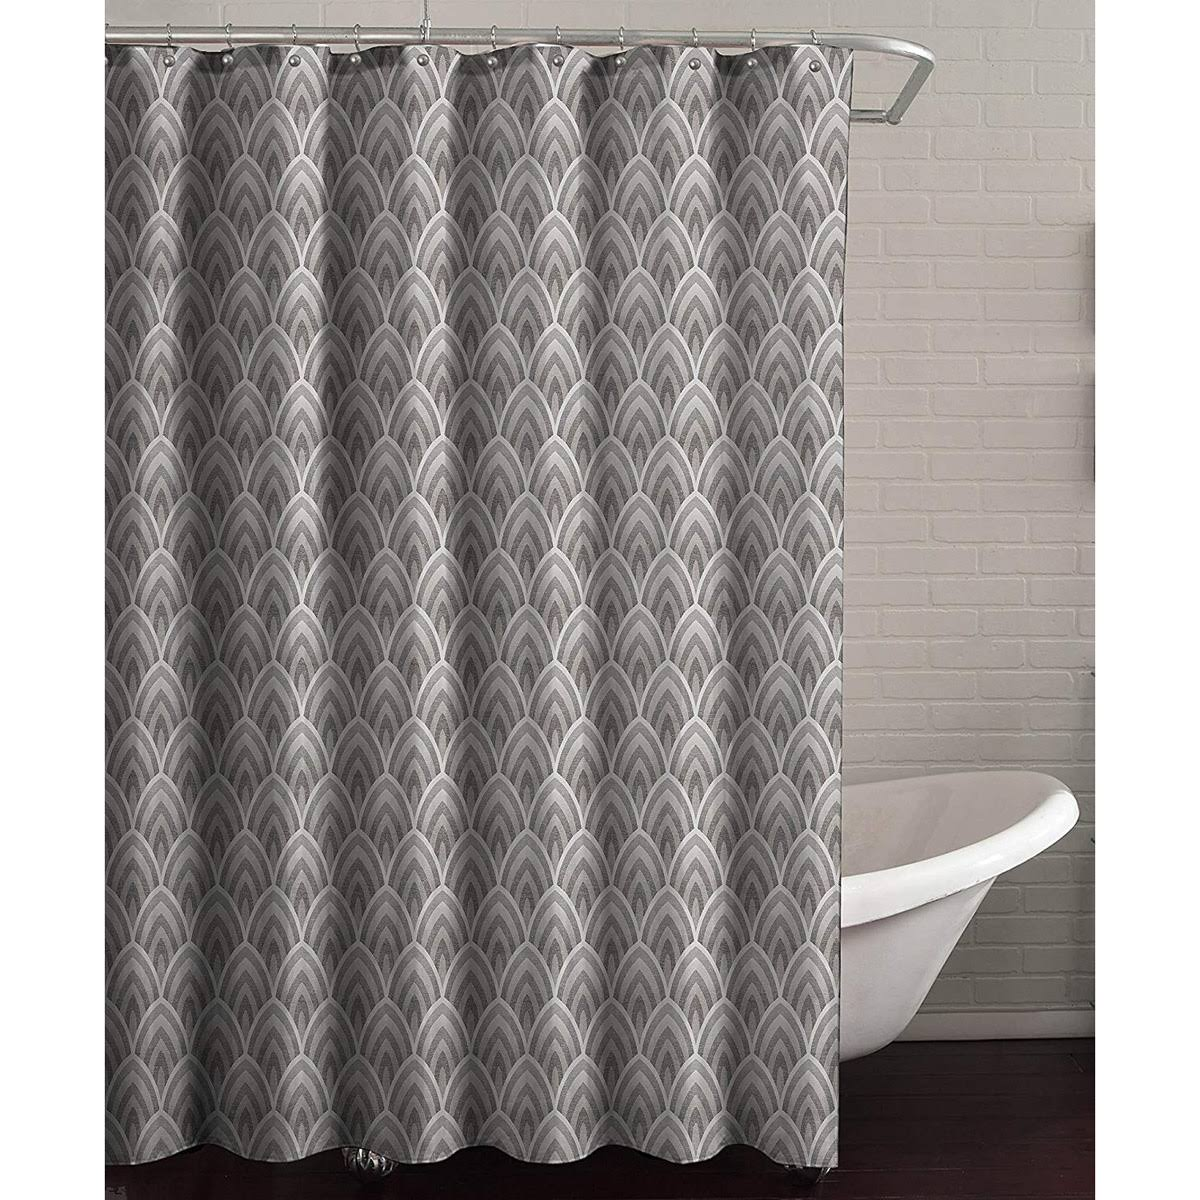 Lorraine Home Fashions Deco Shower Curtain, 70 inch x 72 inch, Gray